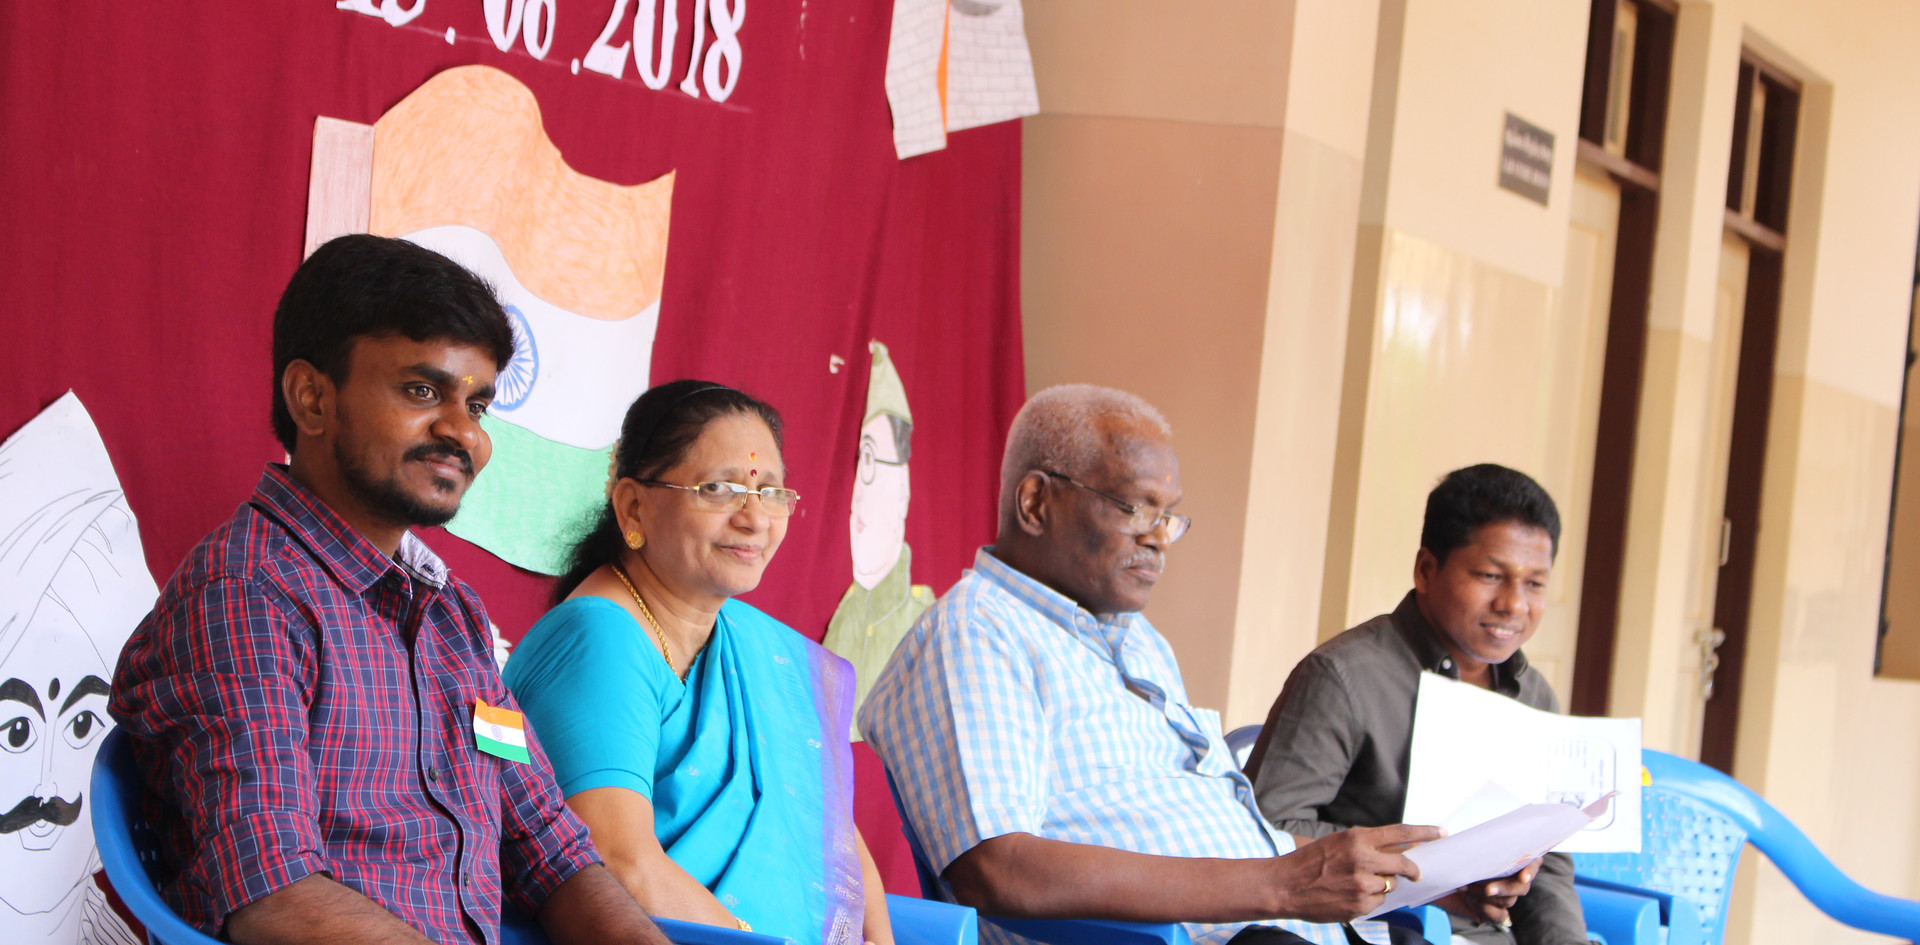 Dr. Antony Paul Presides Over the Function